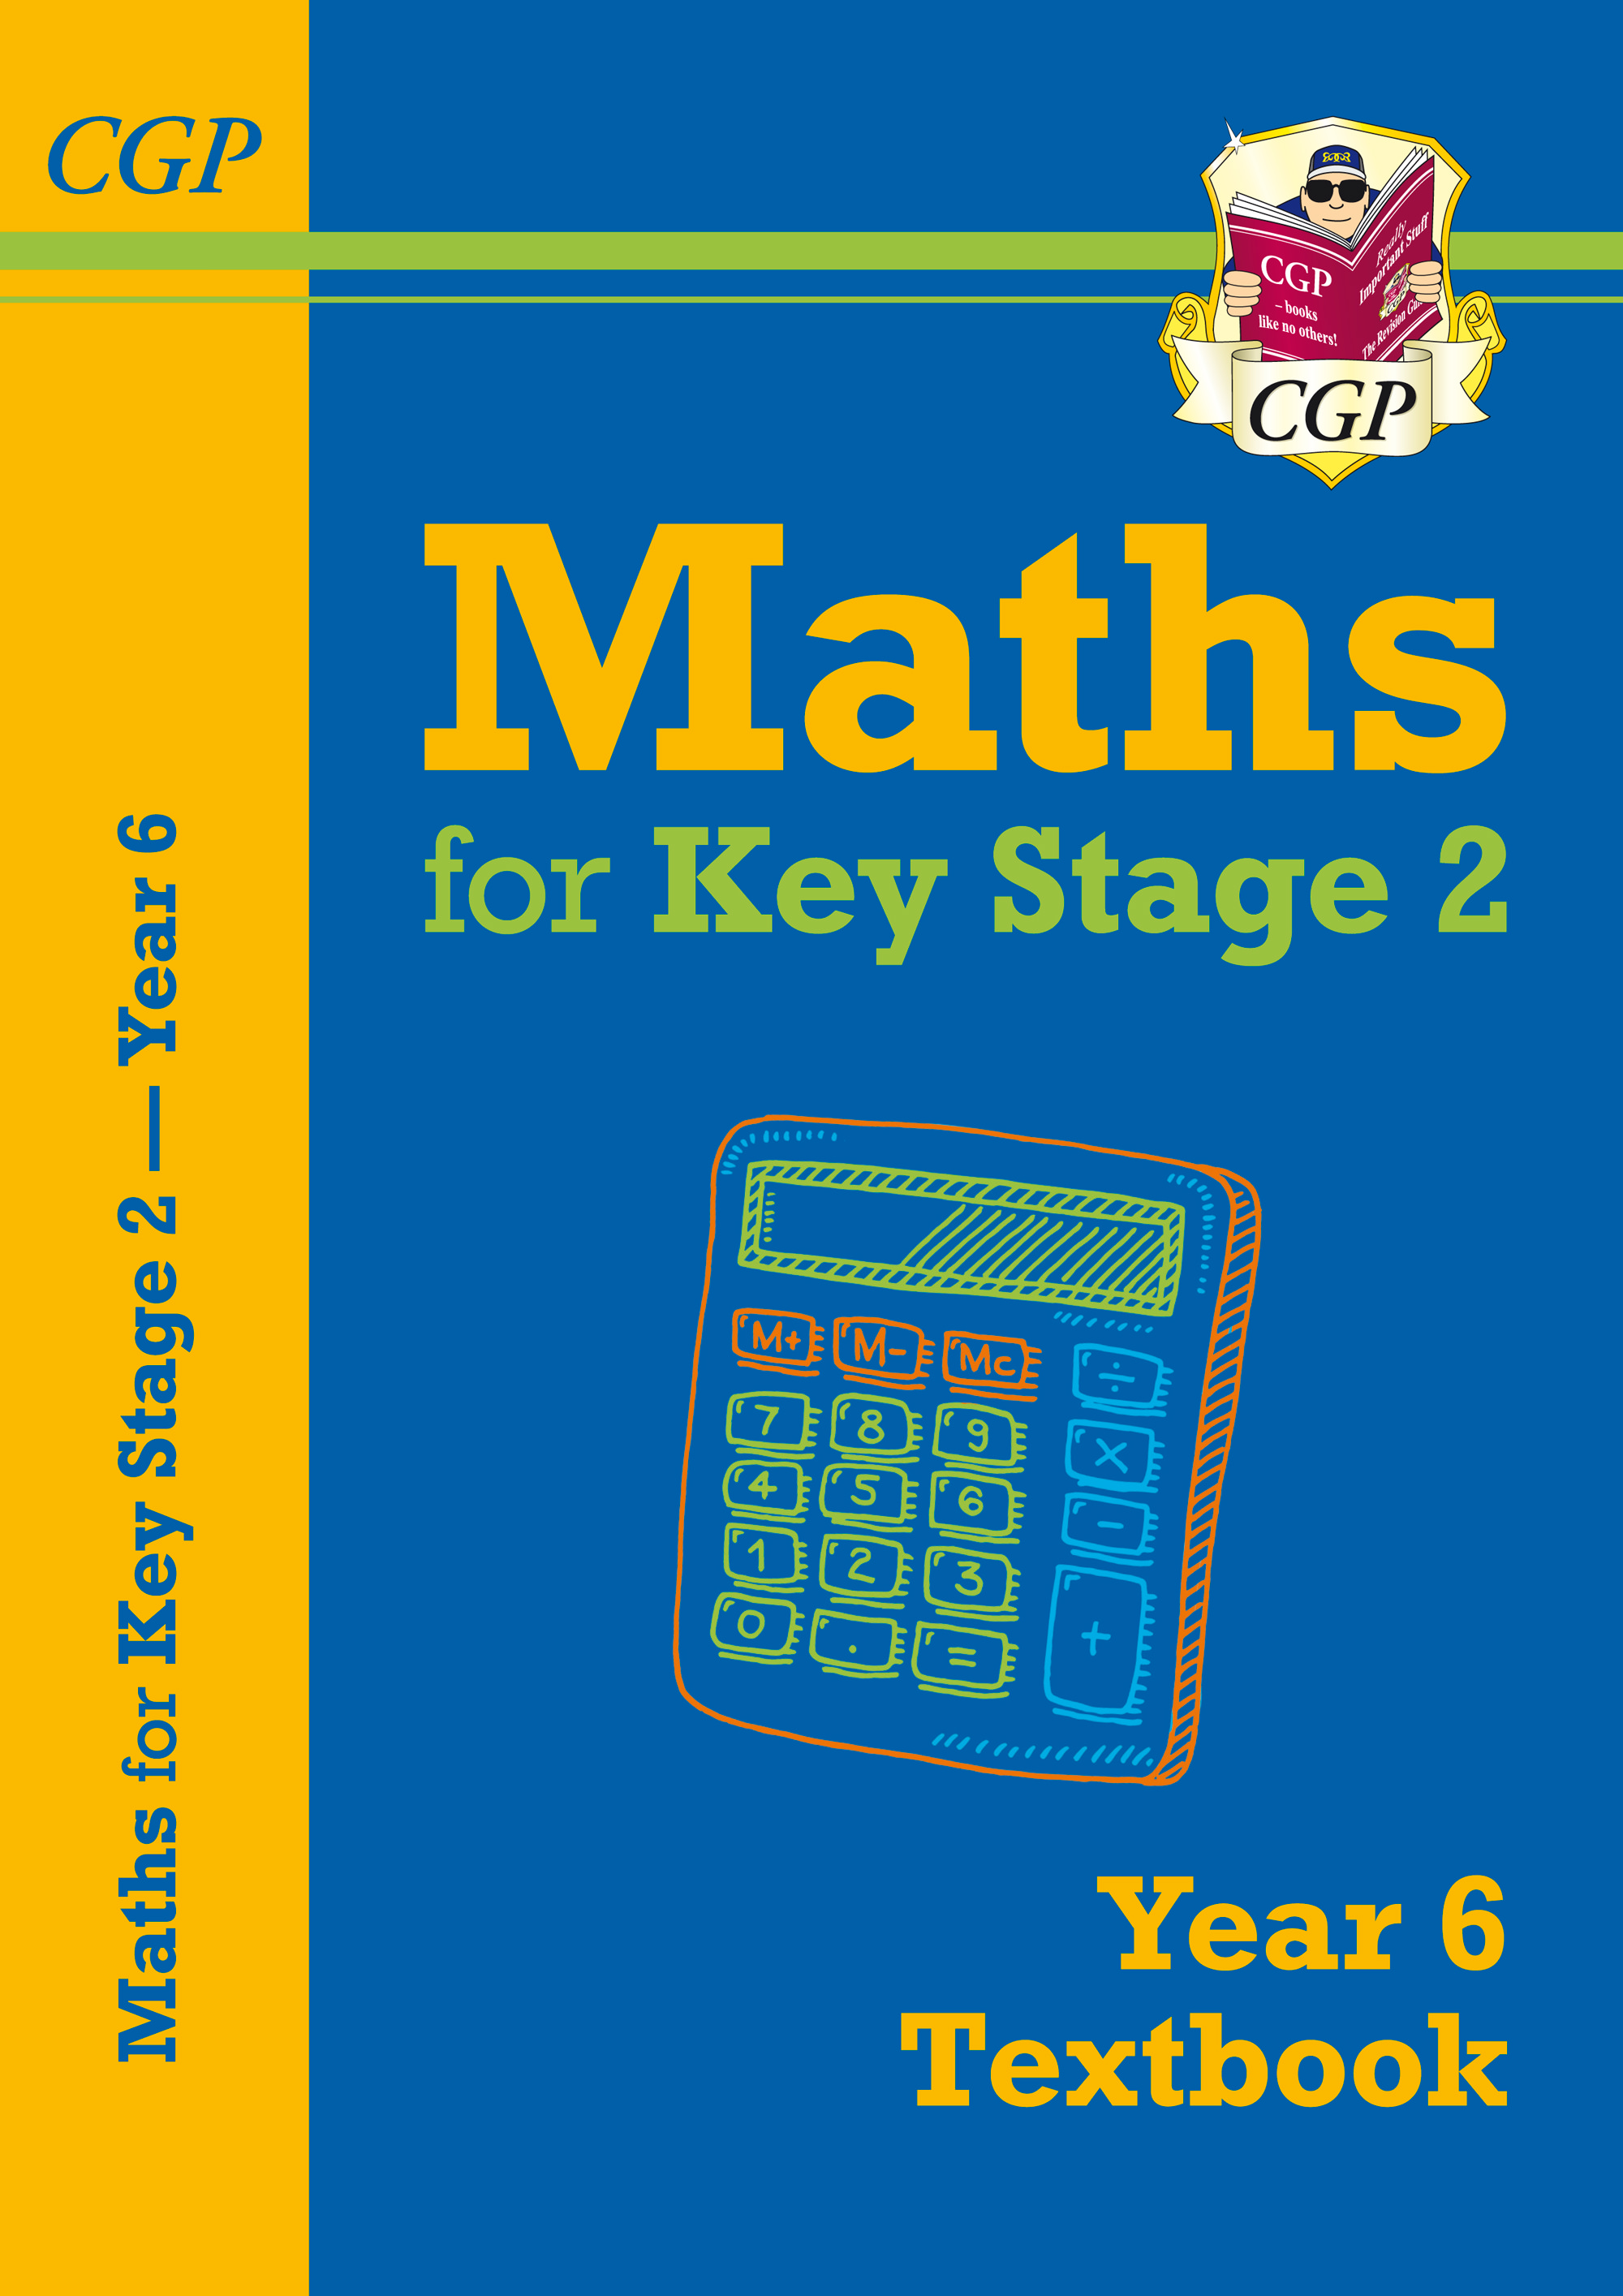 M6PB21 - KS2 Maths Textbook - Year 6